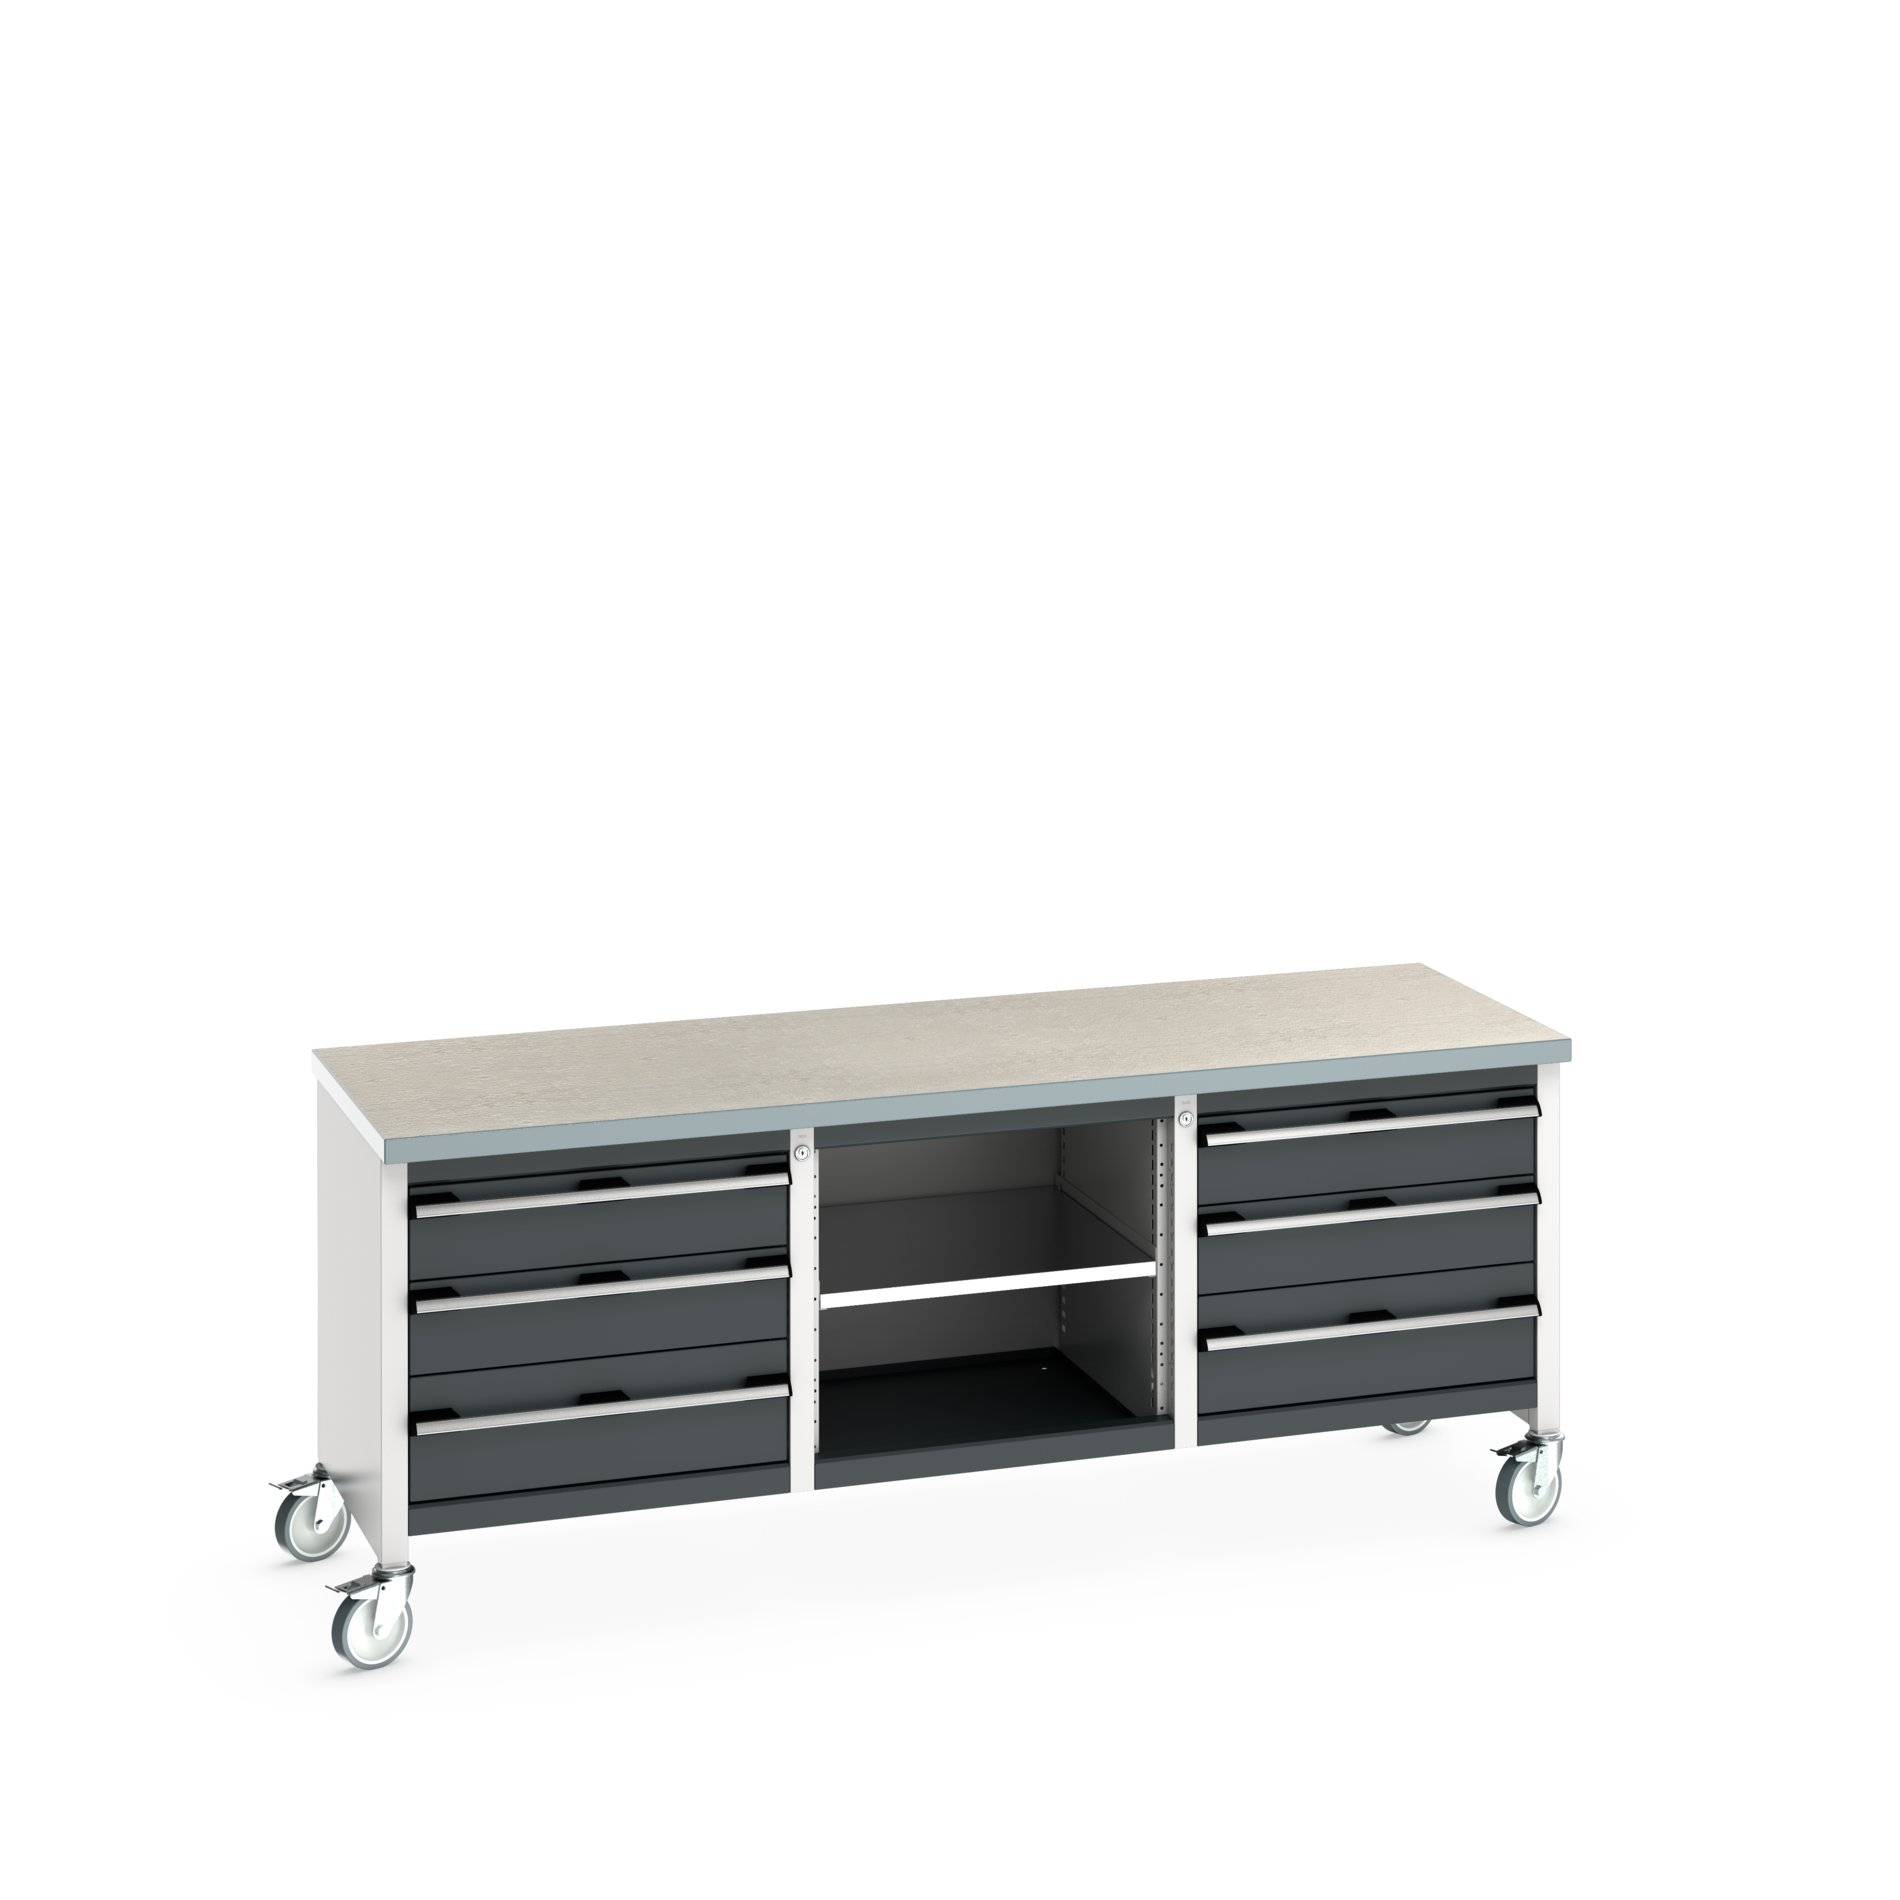 Bott Cubio Mobile Storage Bench With 3 Drawer Cabinet / Open Cupboard / 3 Drawer Cabinet